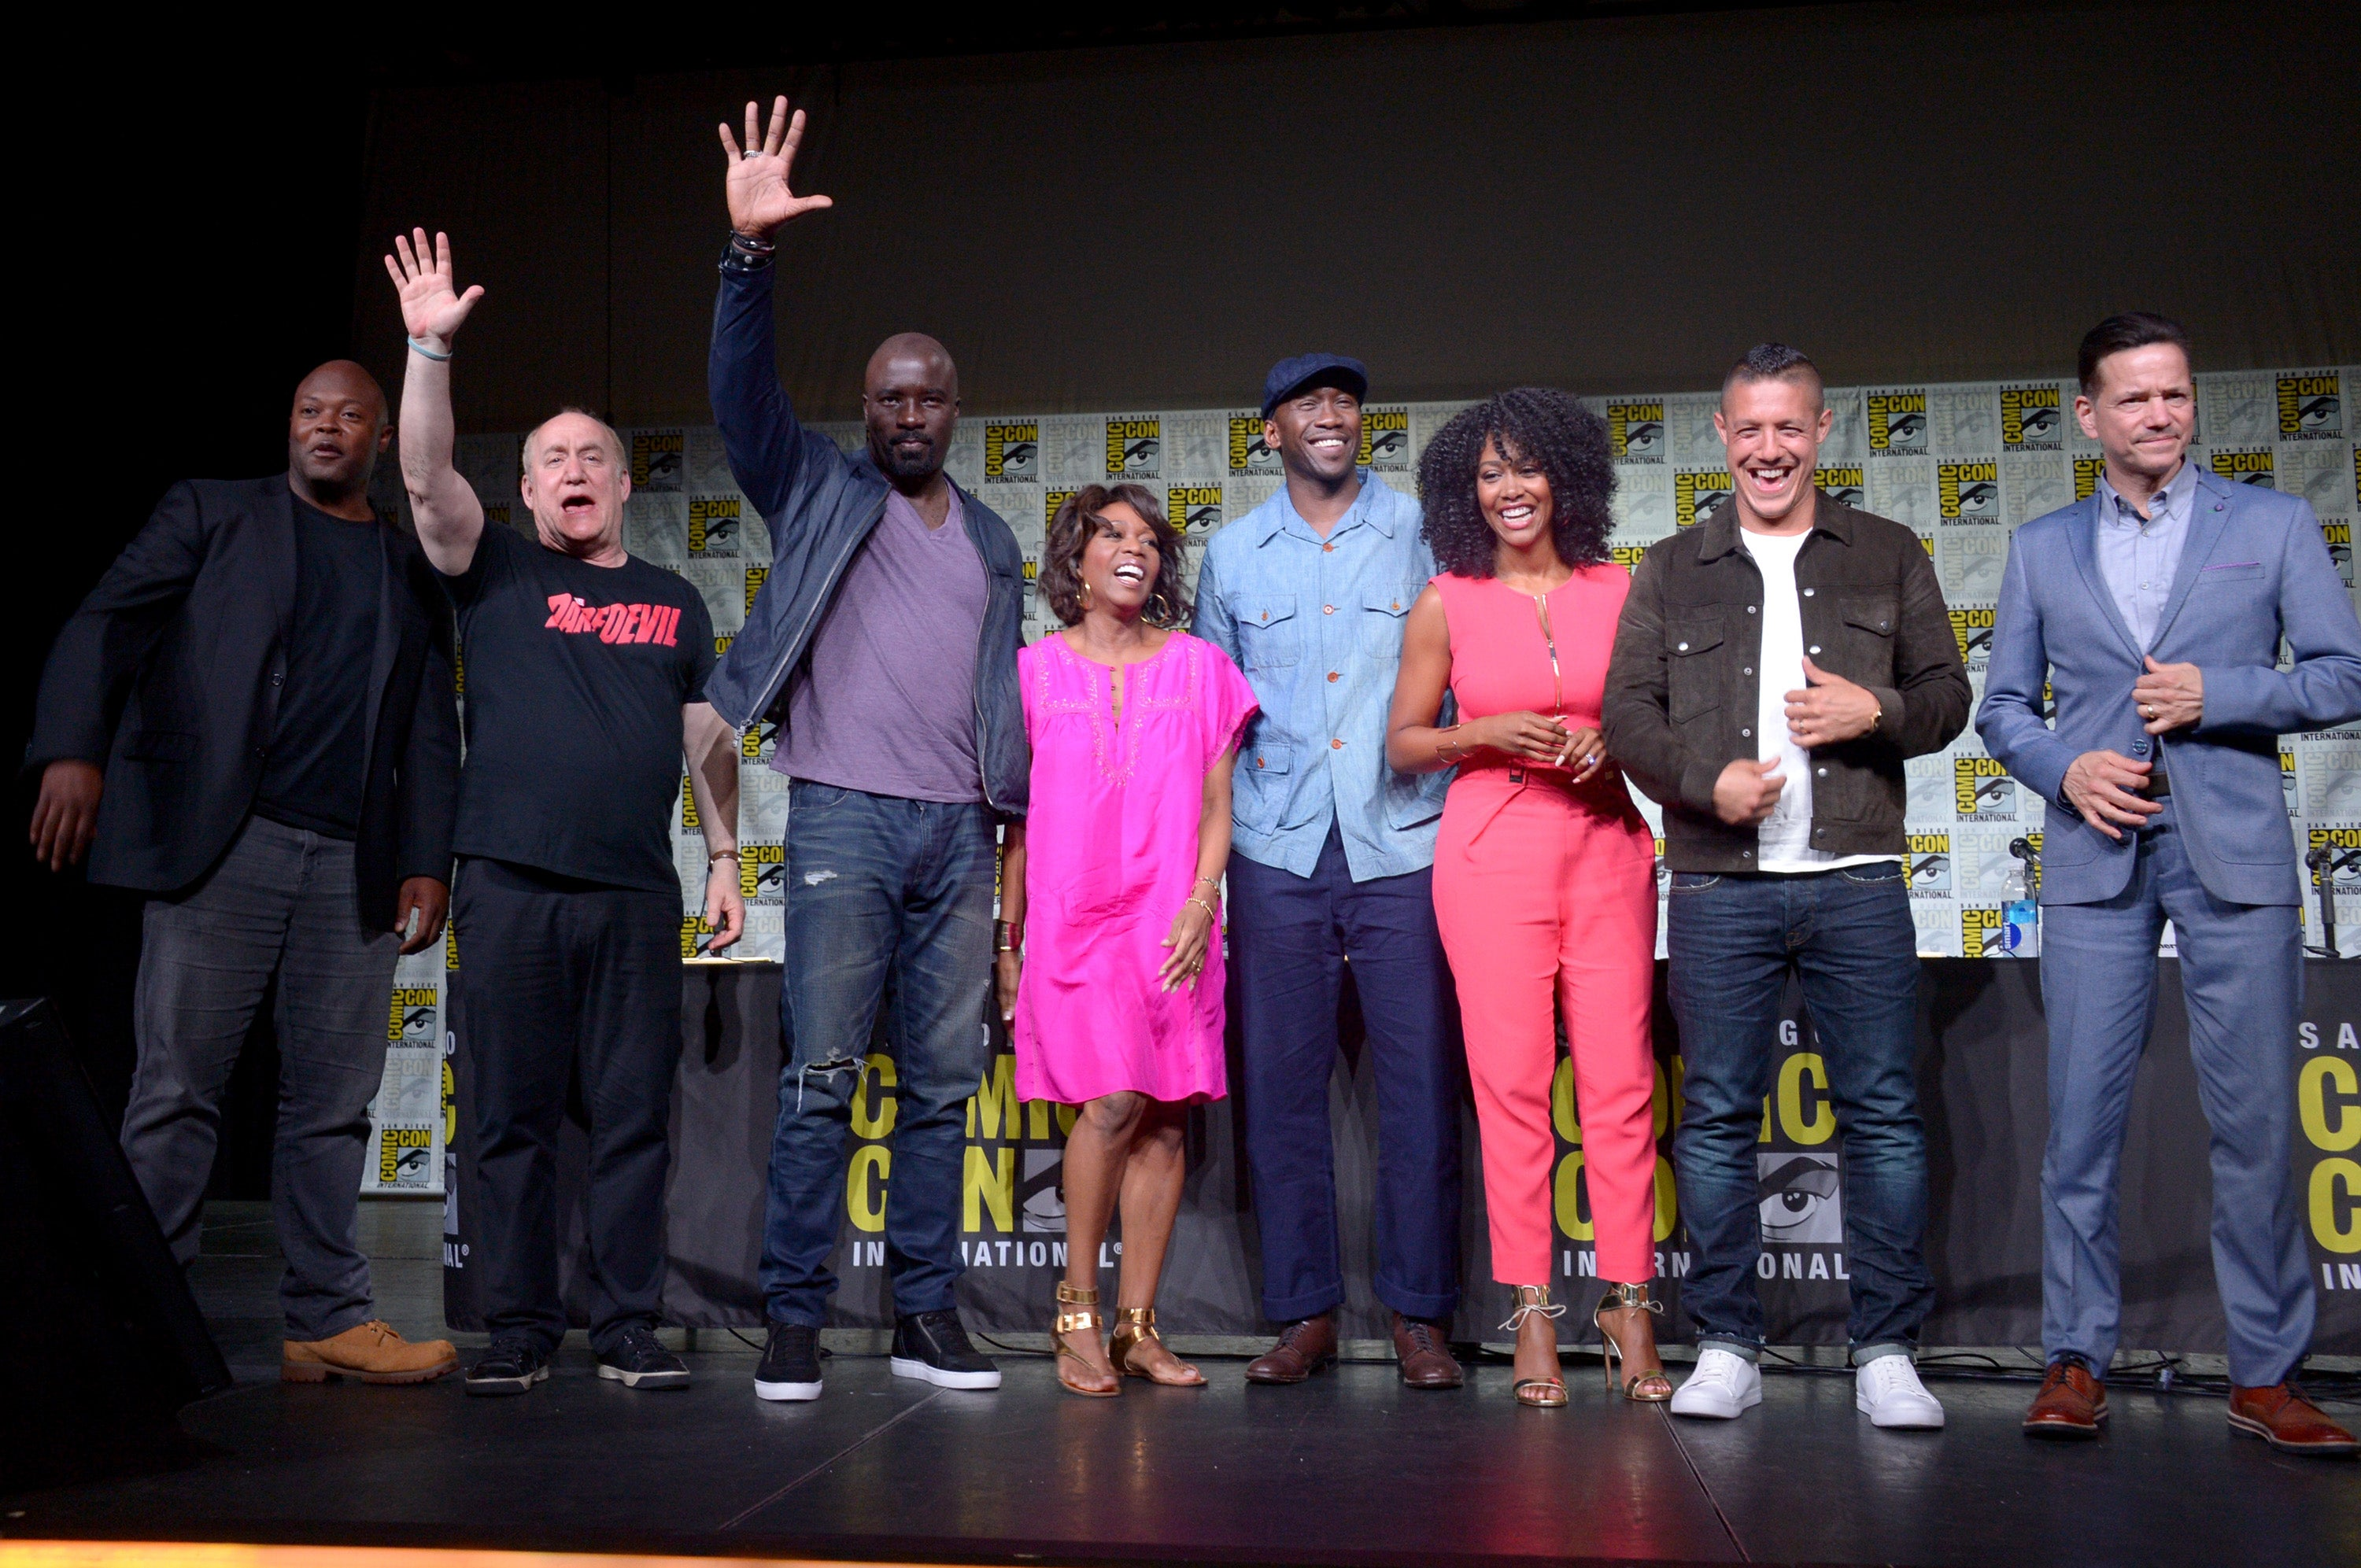 """Luke Cage"" presentation at Comic-Con 2016"